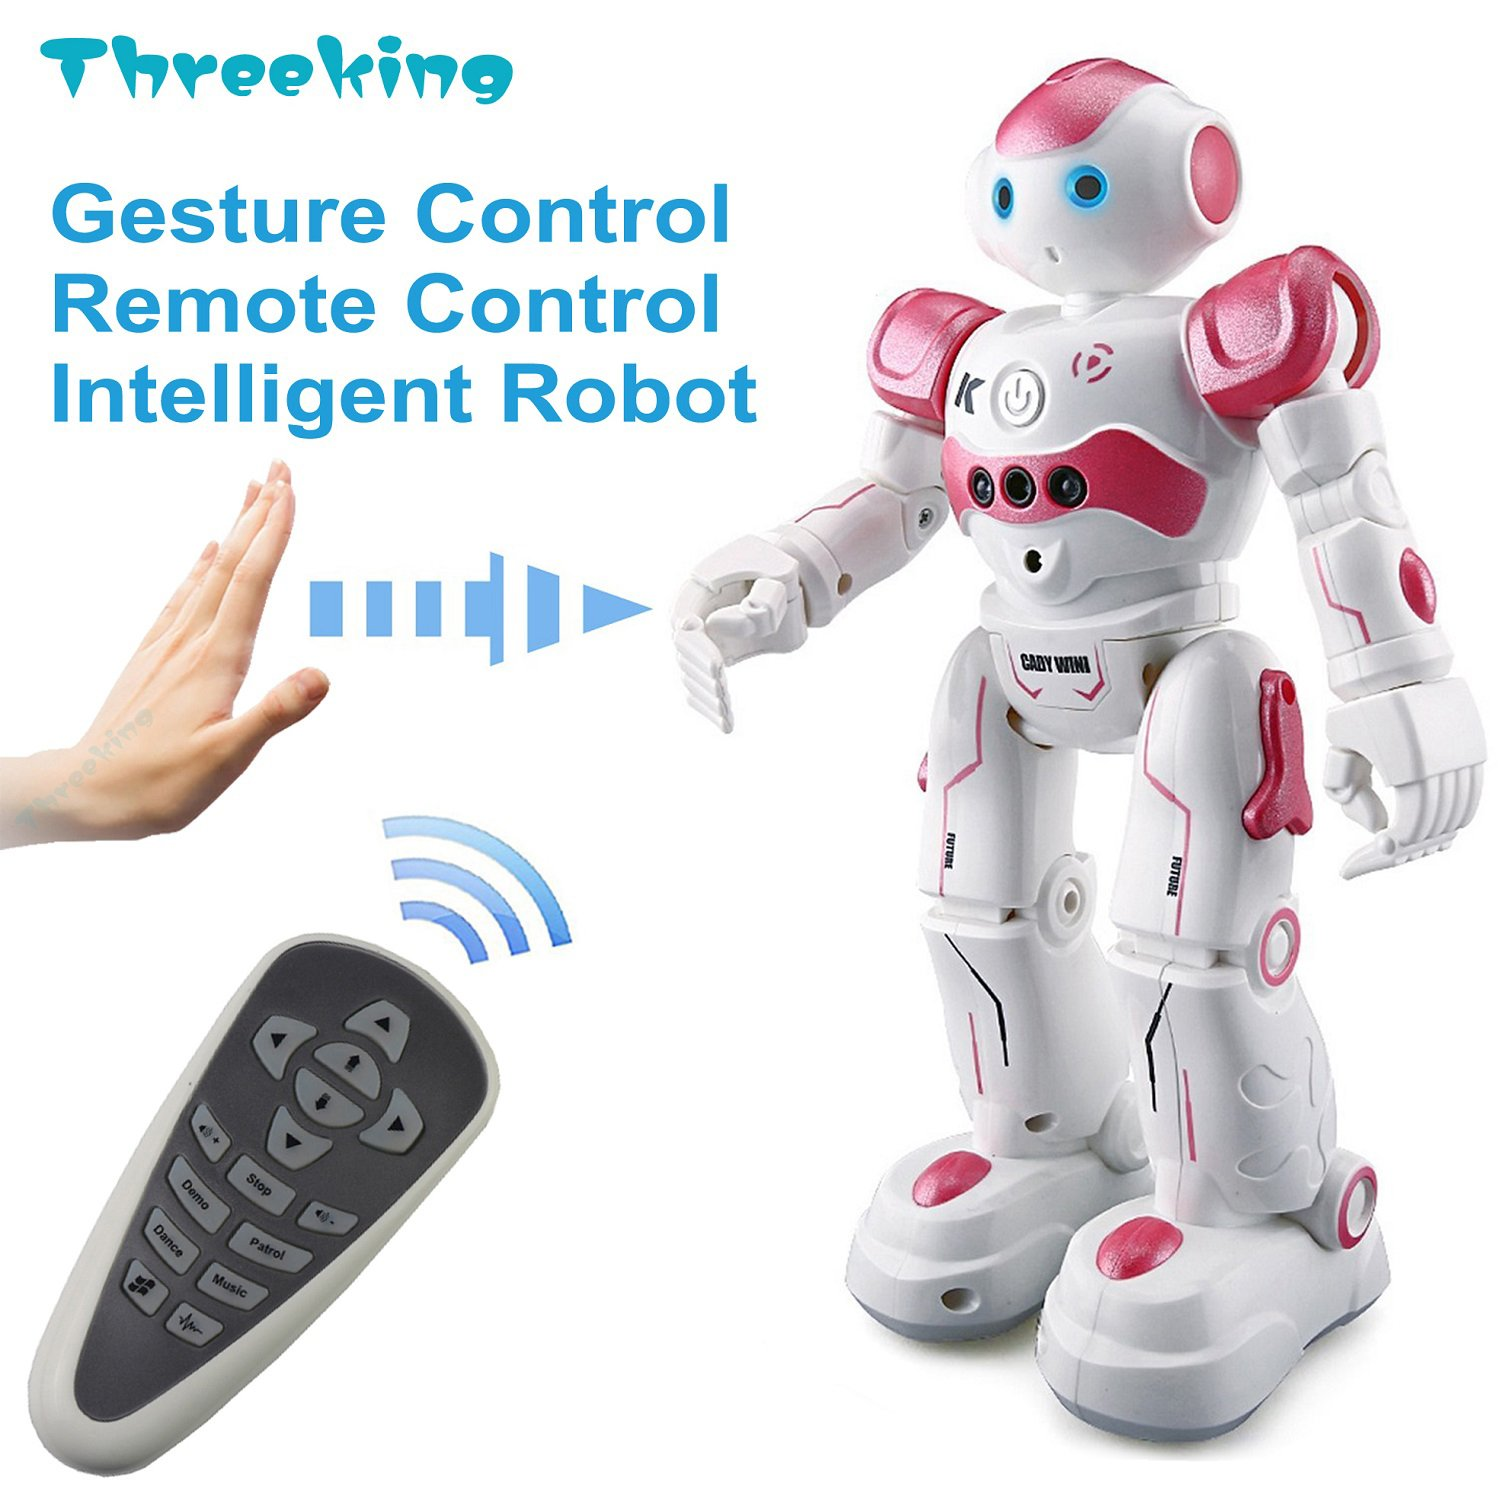 Threeking Smart Robot Toys Gesture Control Remote Control Robot JJRC Robot Gift for Boys Girls Kid's Companion:Game Fun Learning Music Dance Etc.Rechargeable Rc Robot Kit(Female Voice) - Pink